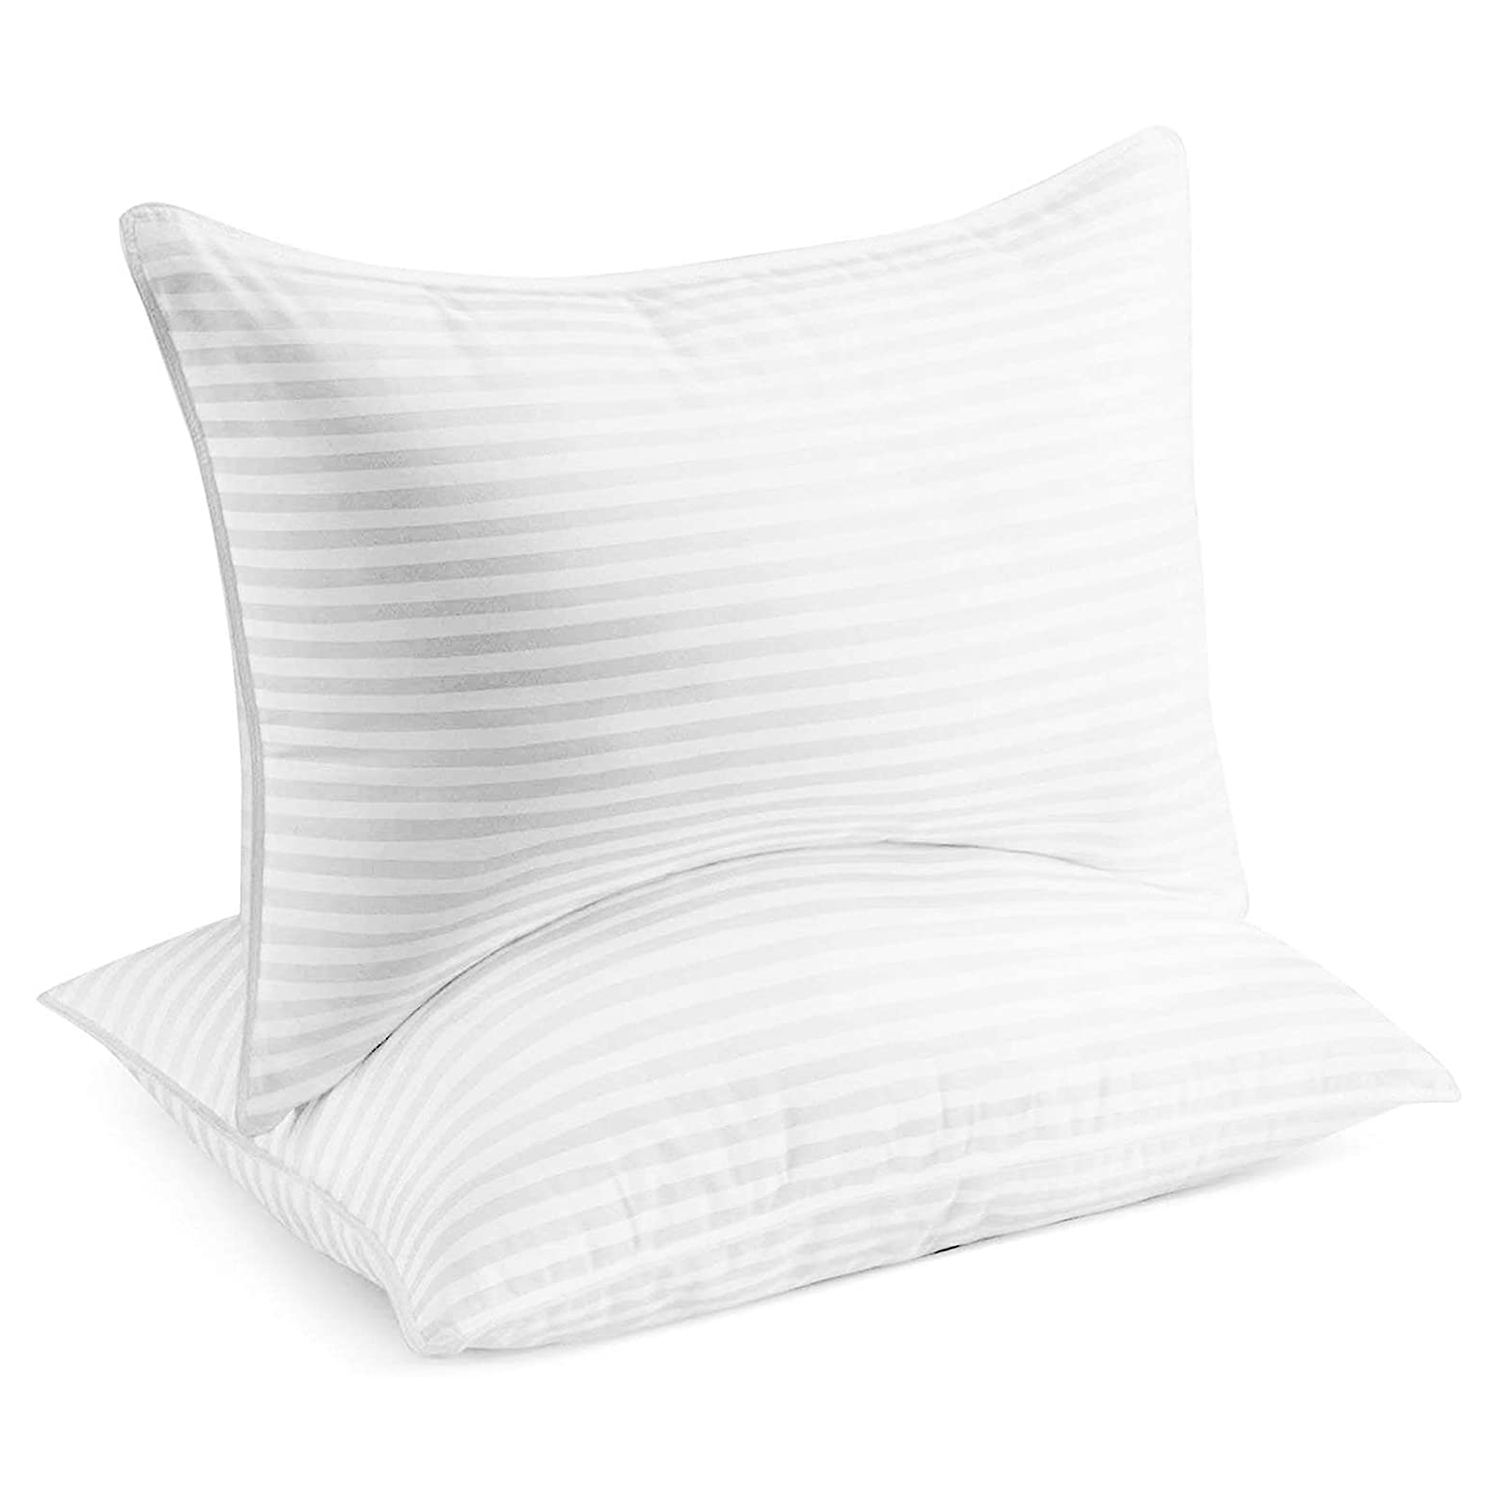 Beckham Hotel Collection Hypoallergenic Gel Pillow Two-Pack